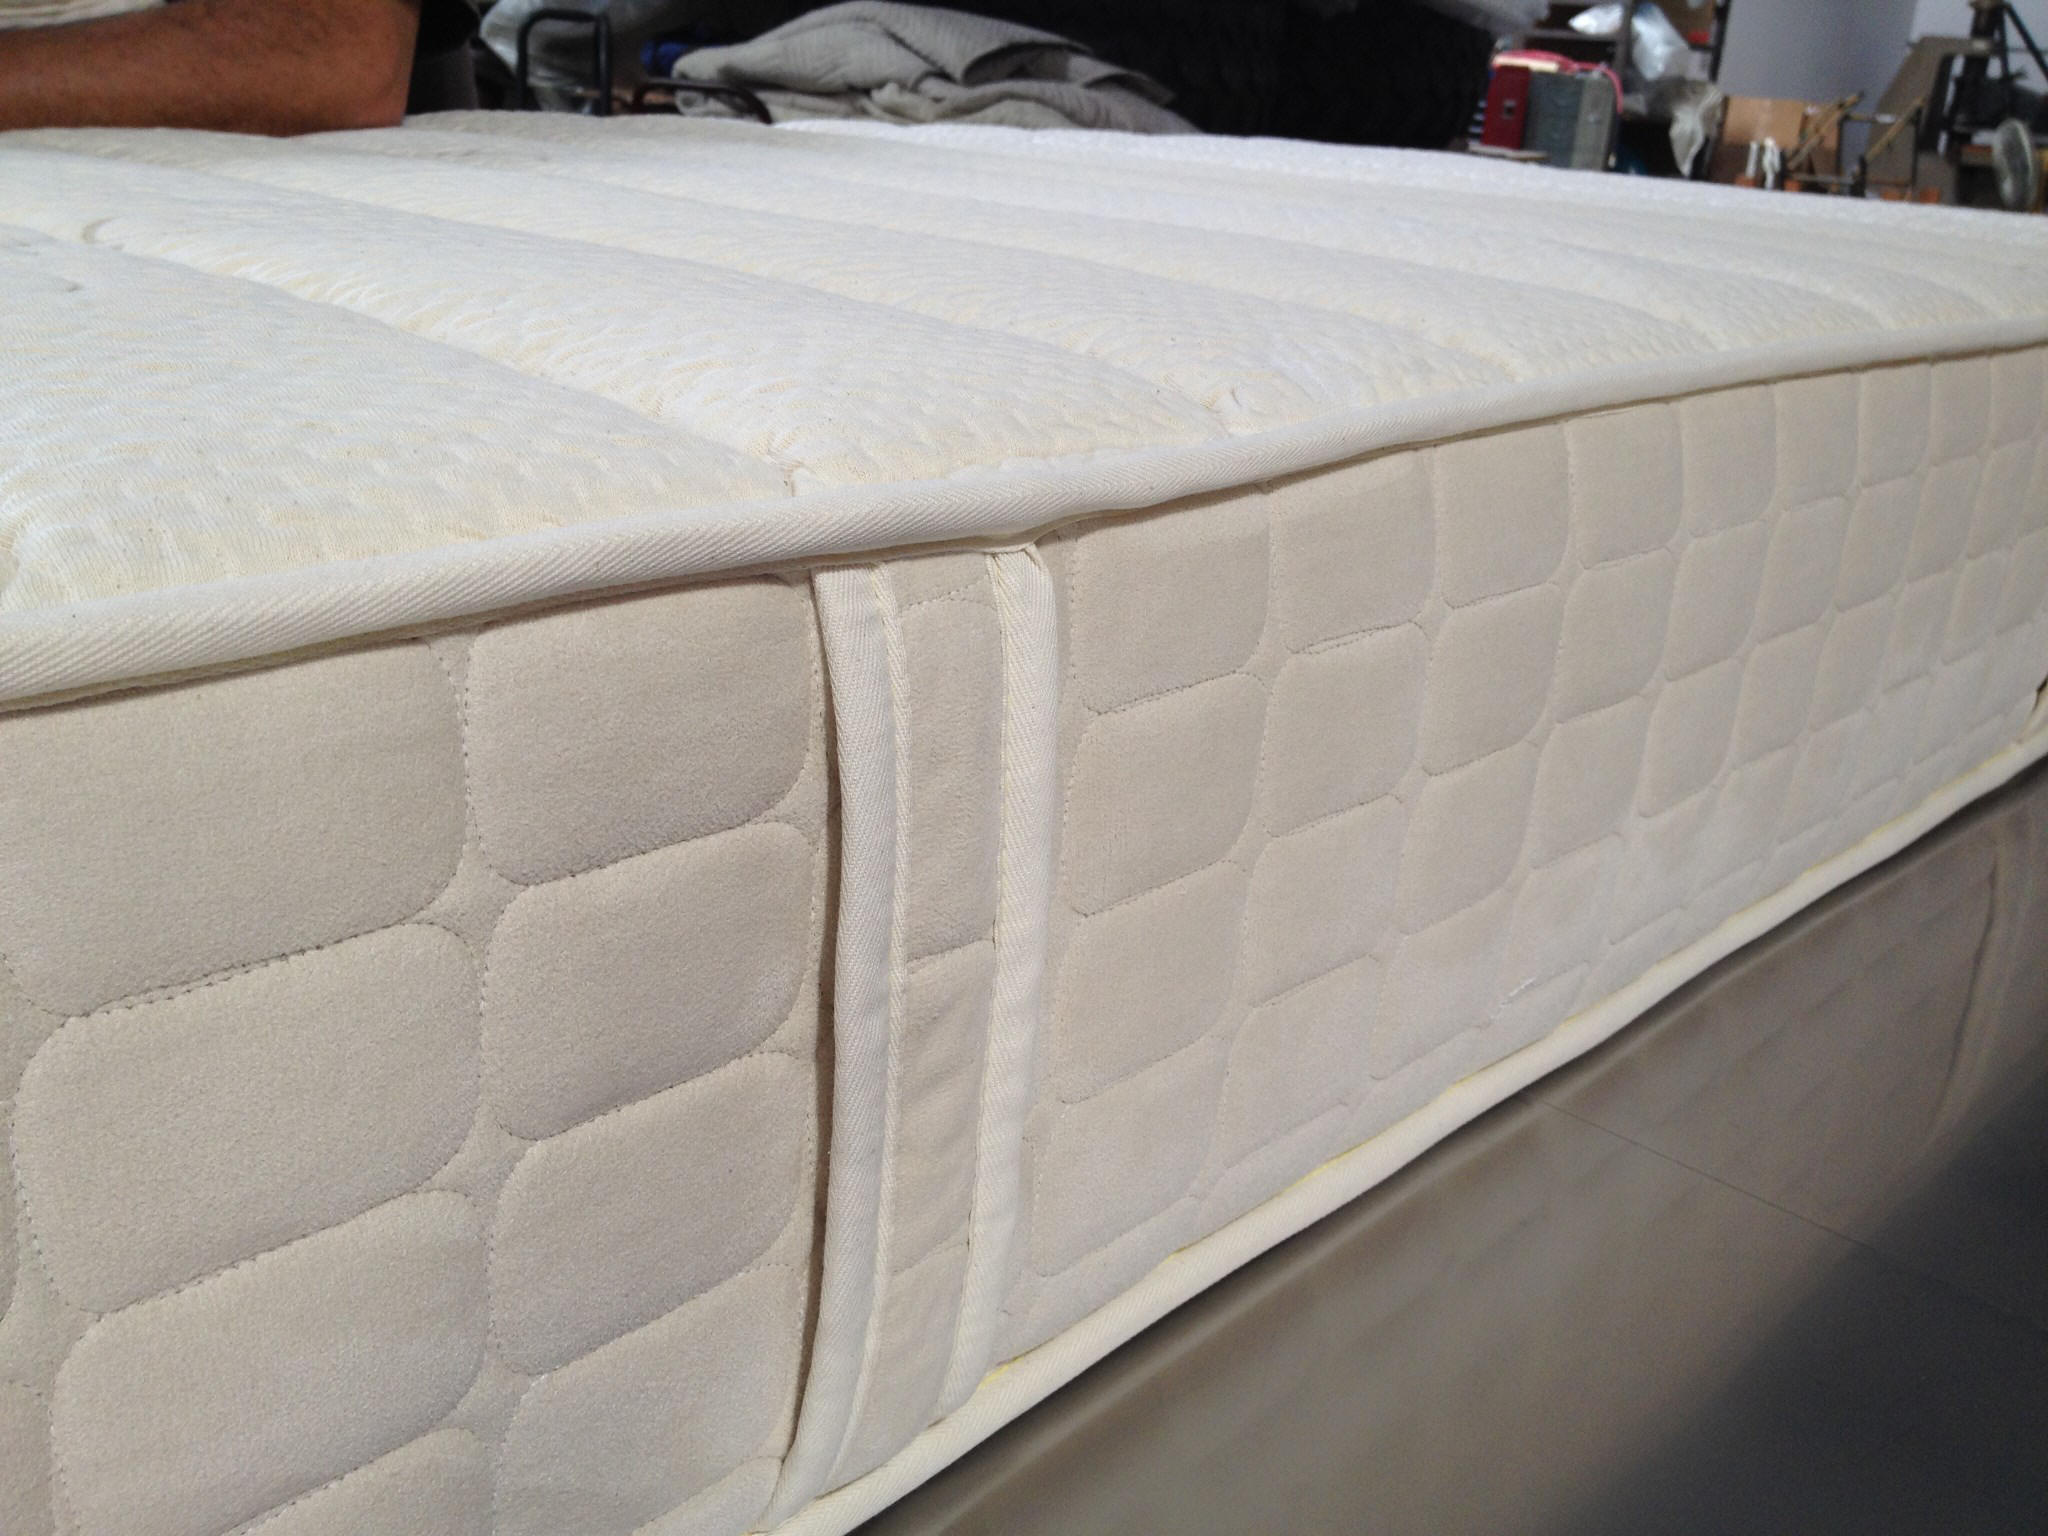 full best us dual on choice vegas com sale king las dazzle mattresses cool nv walmart queen certipur infused prominent products foam of size gorgeous bamboo layered mattress horrifying v mesmerize memory used certified sales luxury amazing